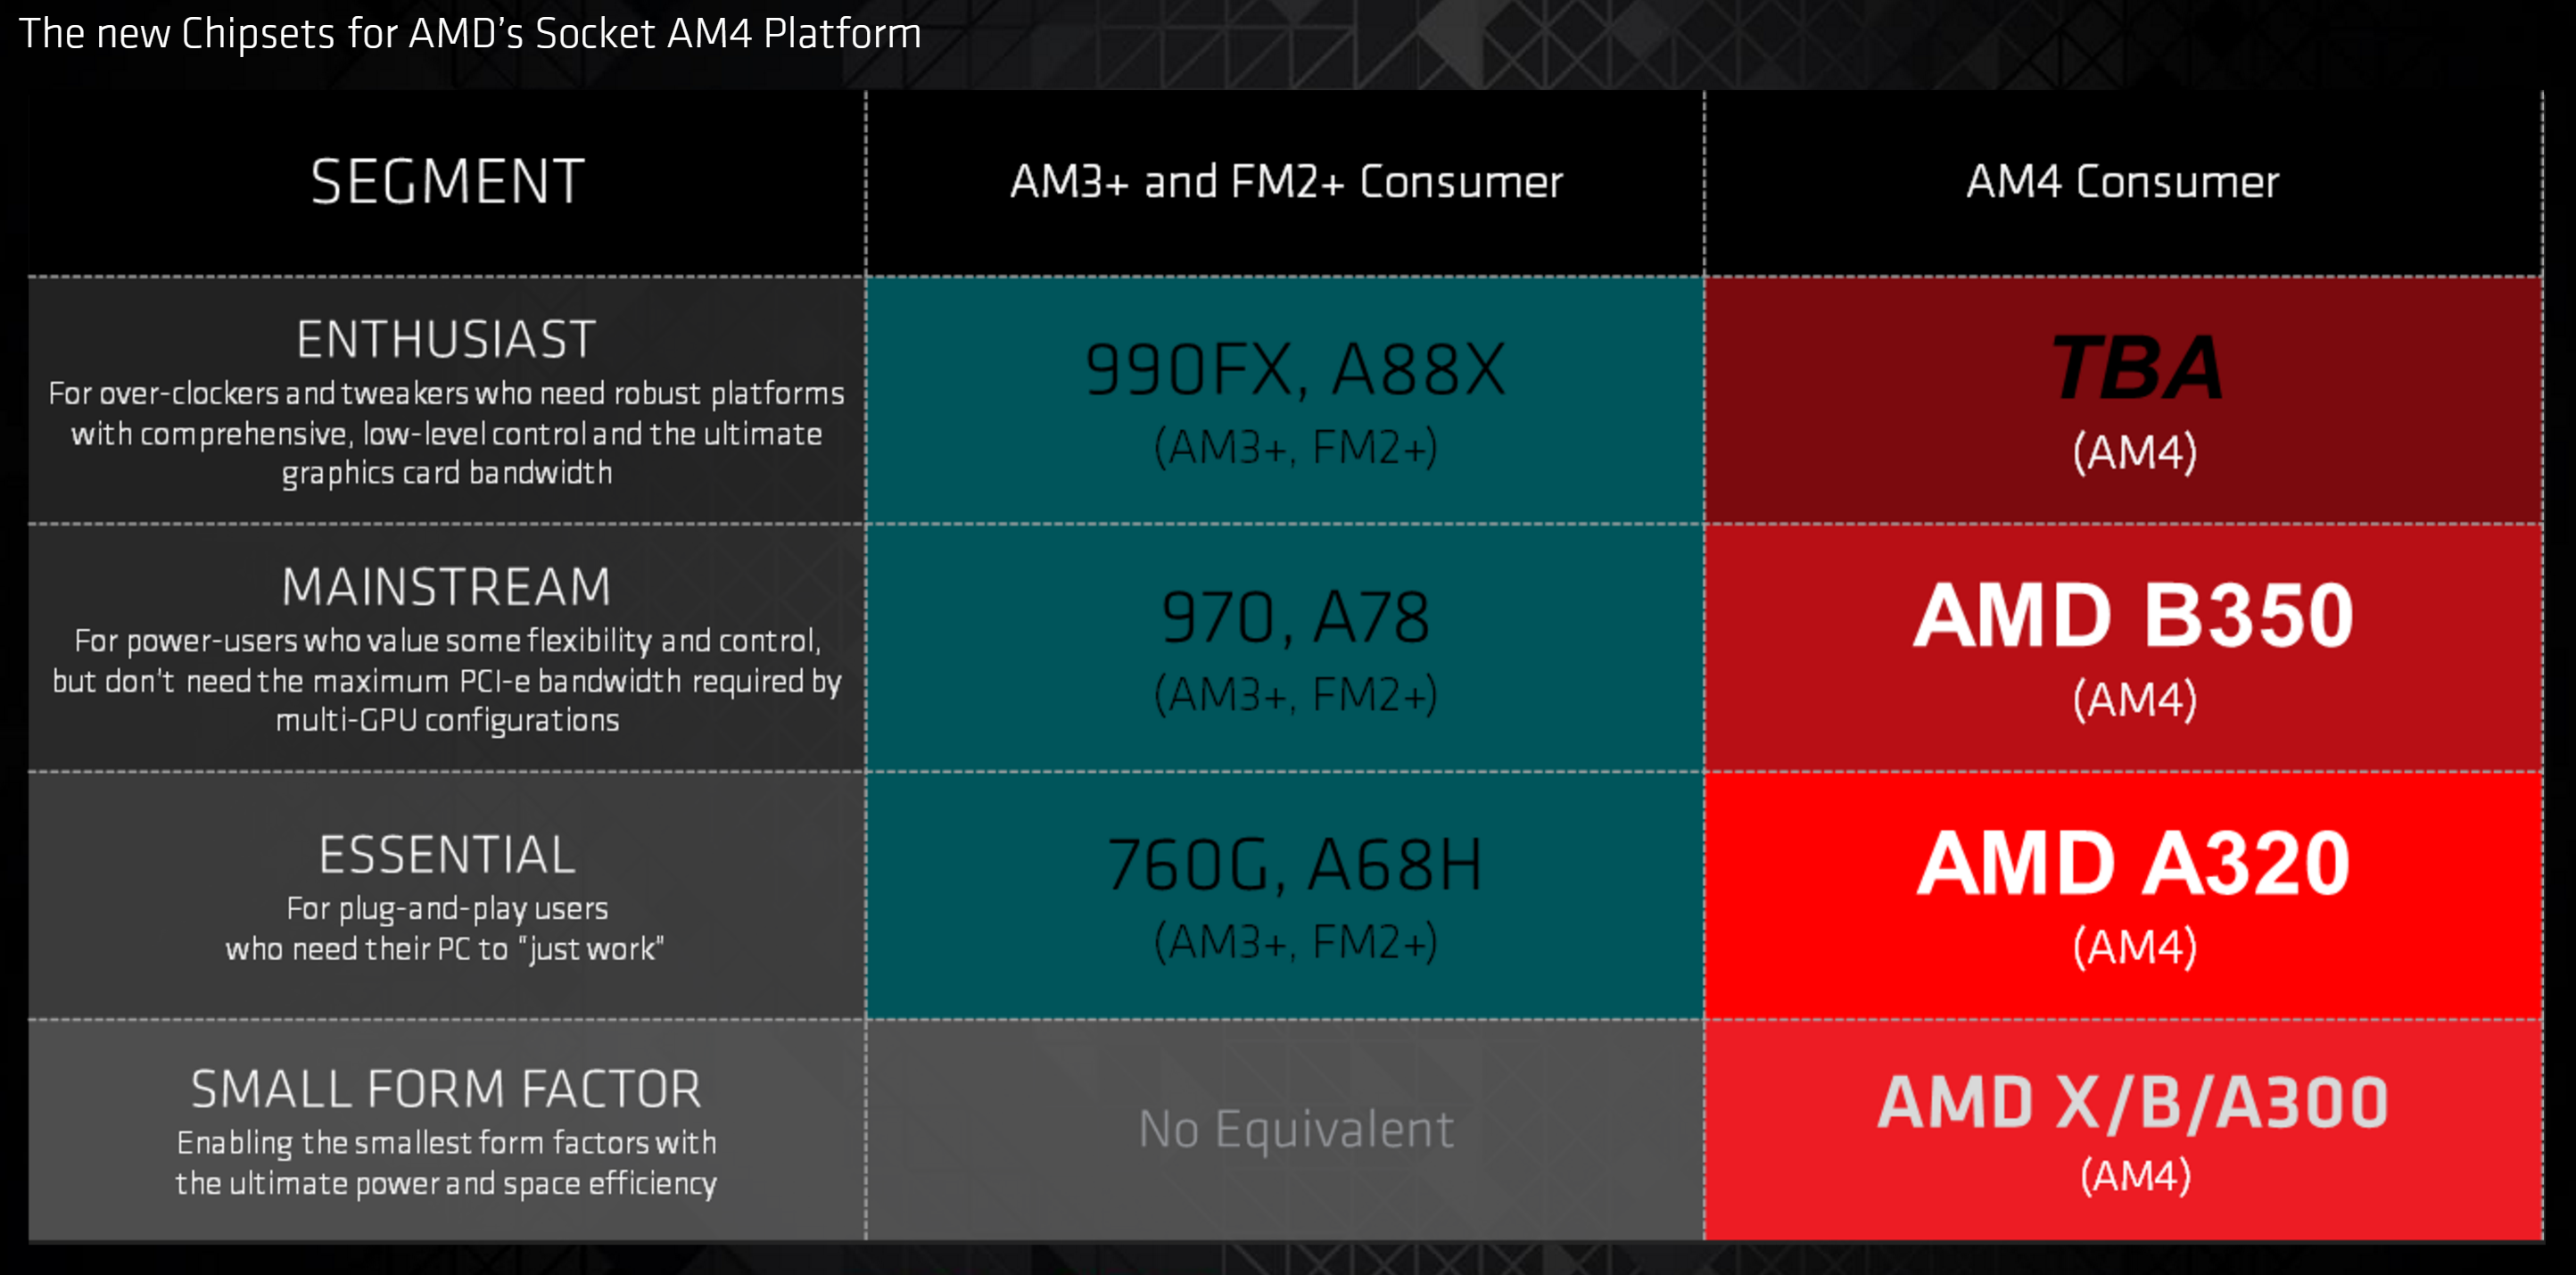 AMD's new Bristol Ridge processor is faster and more power